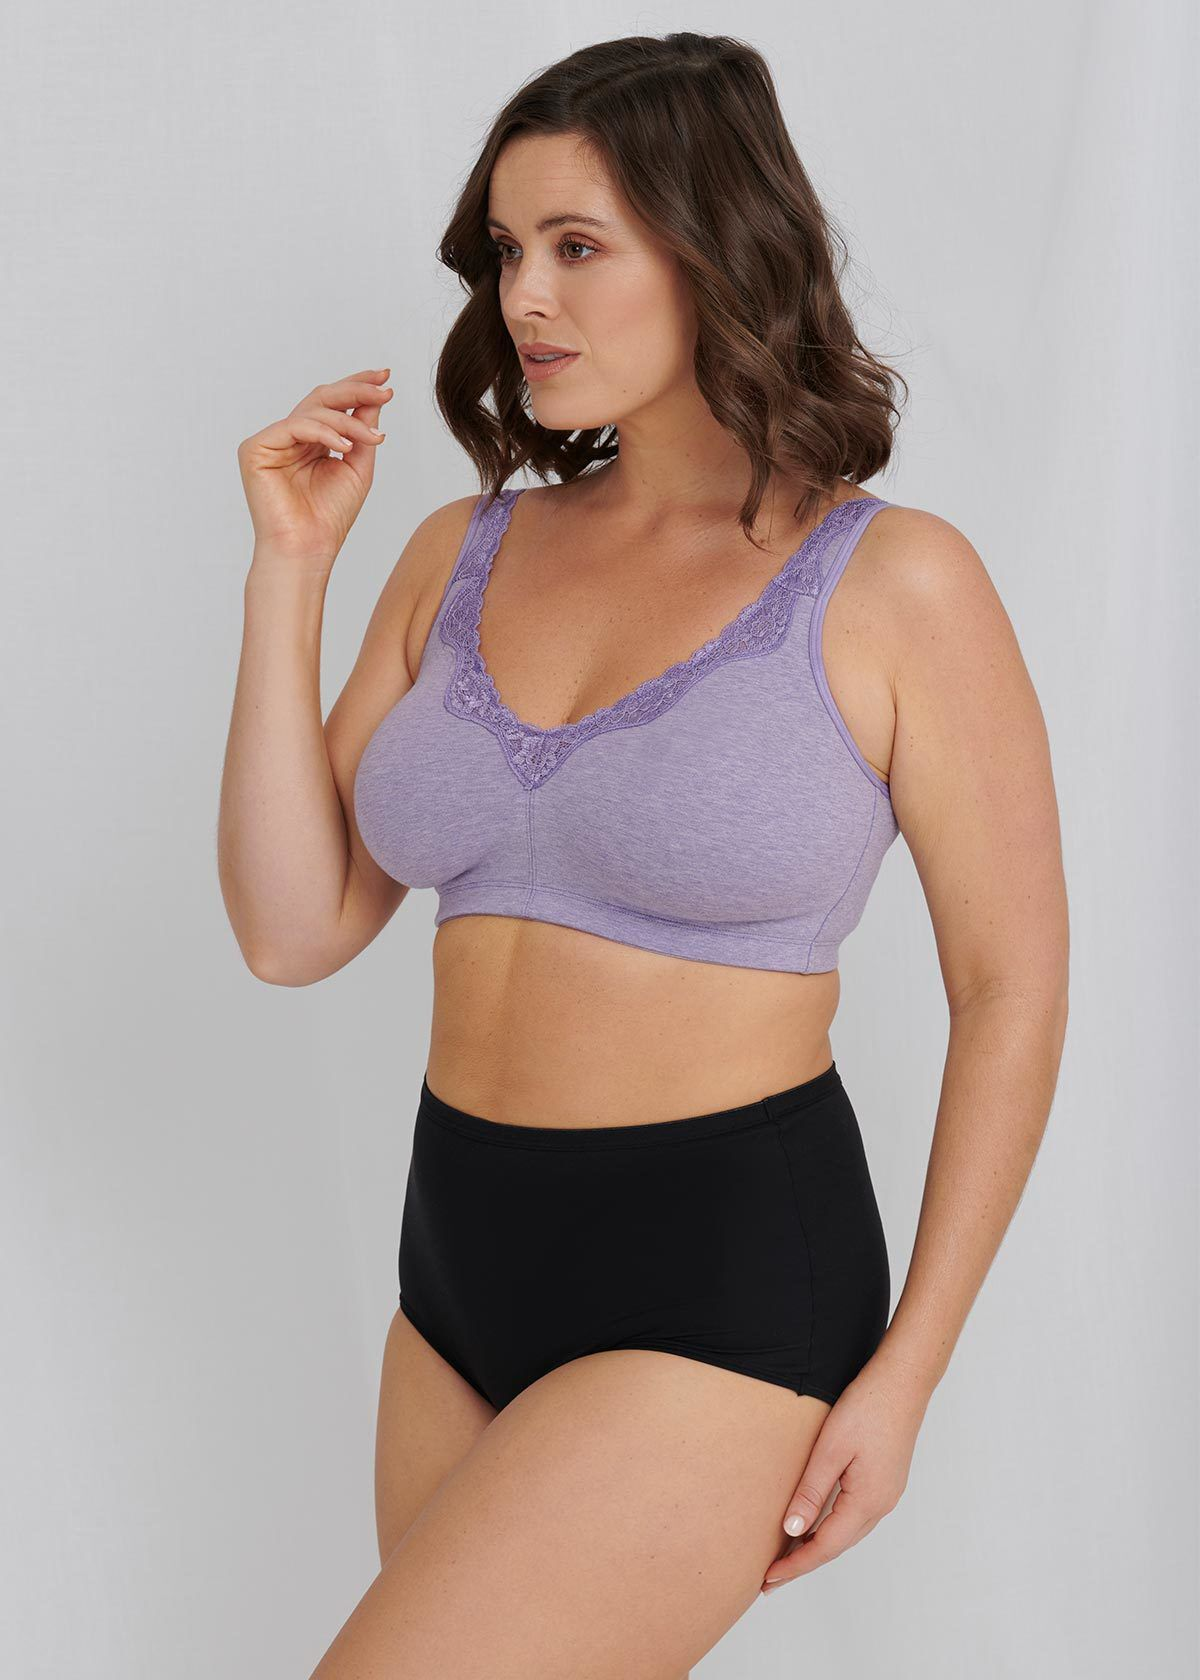 Sports Bras in sizes 18+ | Plus Size Sports Bras Australia